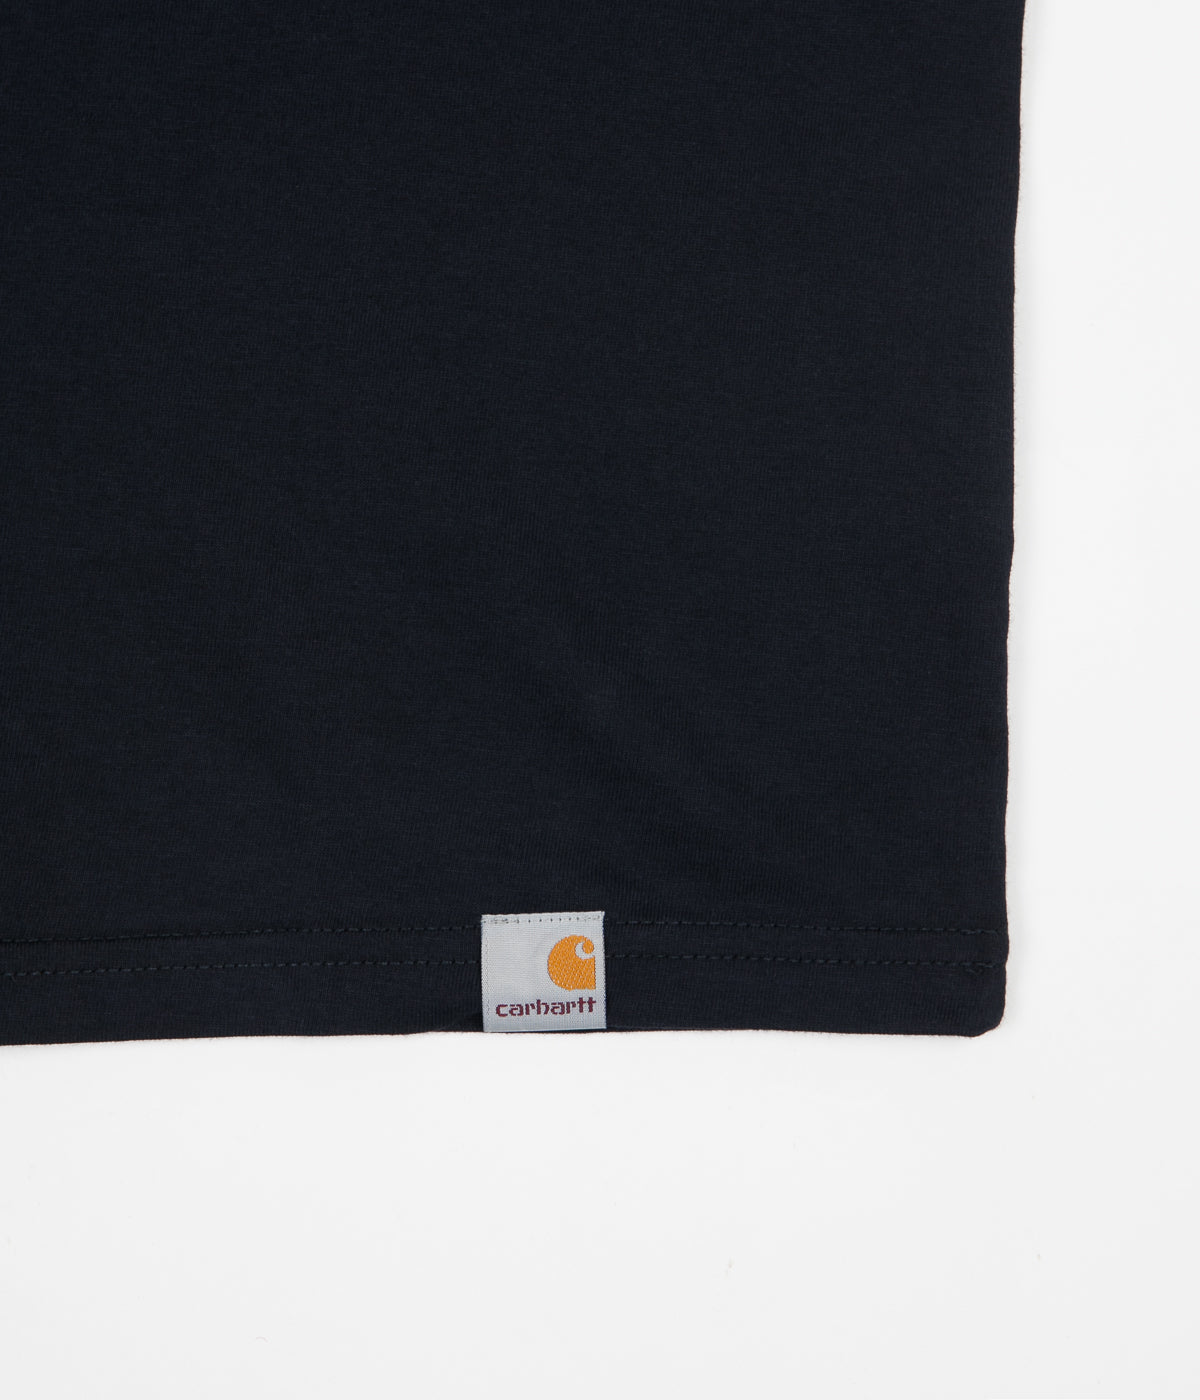 Carhartt State Sports T-Shirt - Dark Navy